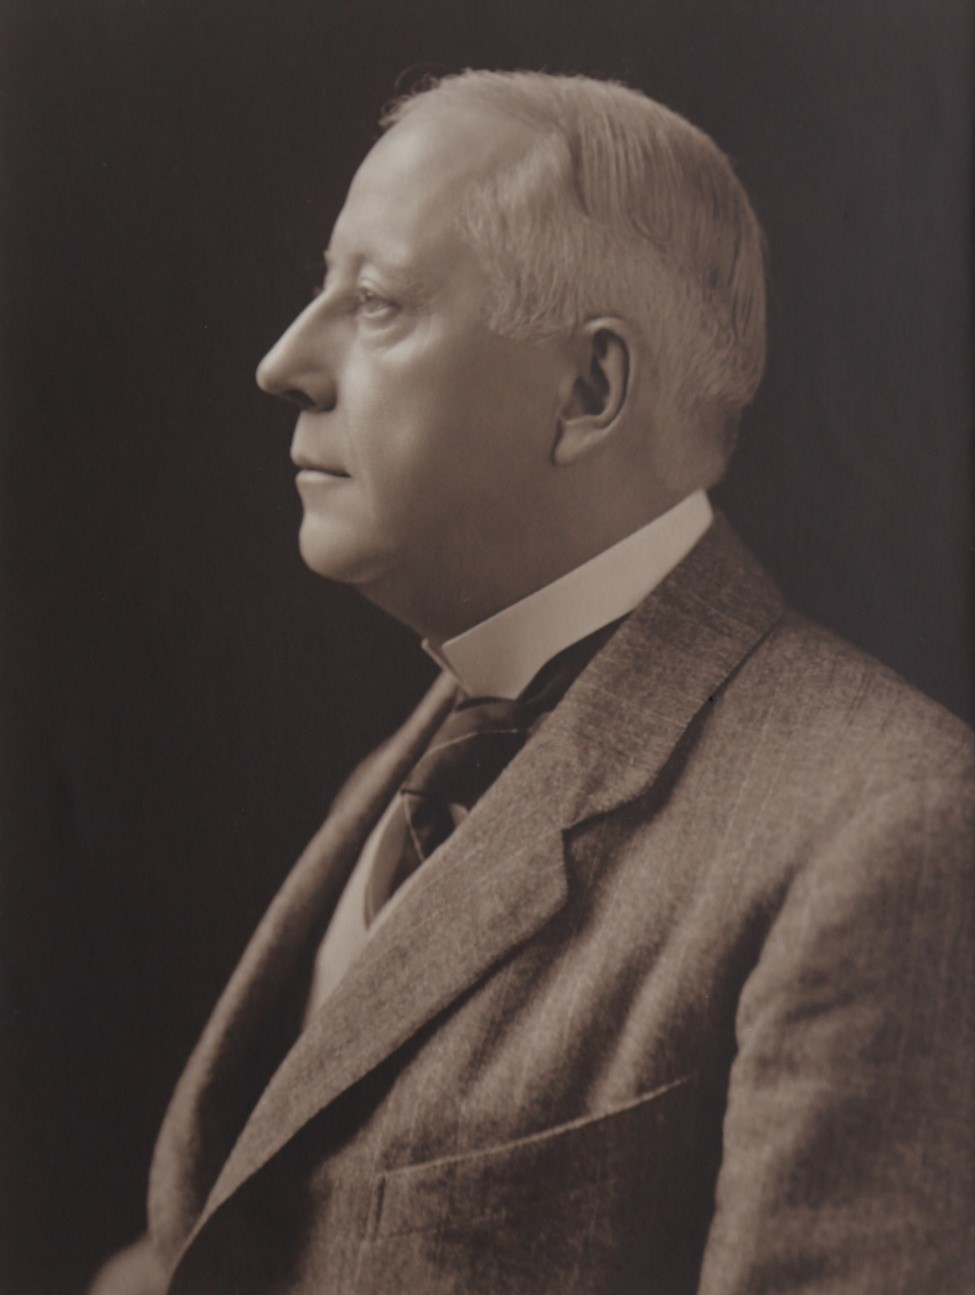 Charles Deering (1852-1927) was an industrialist, philanthropist, art collector, and environmentalist